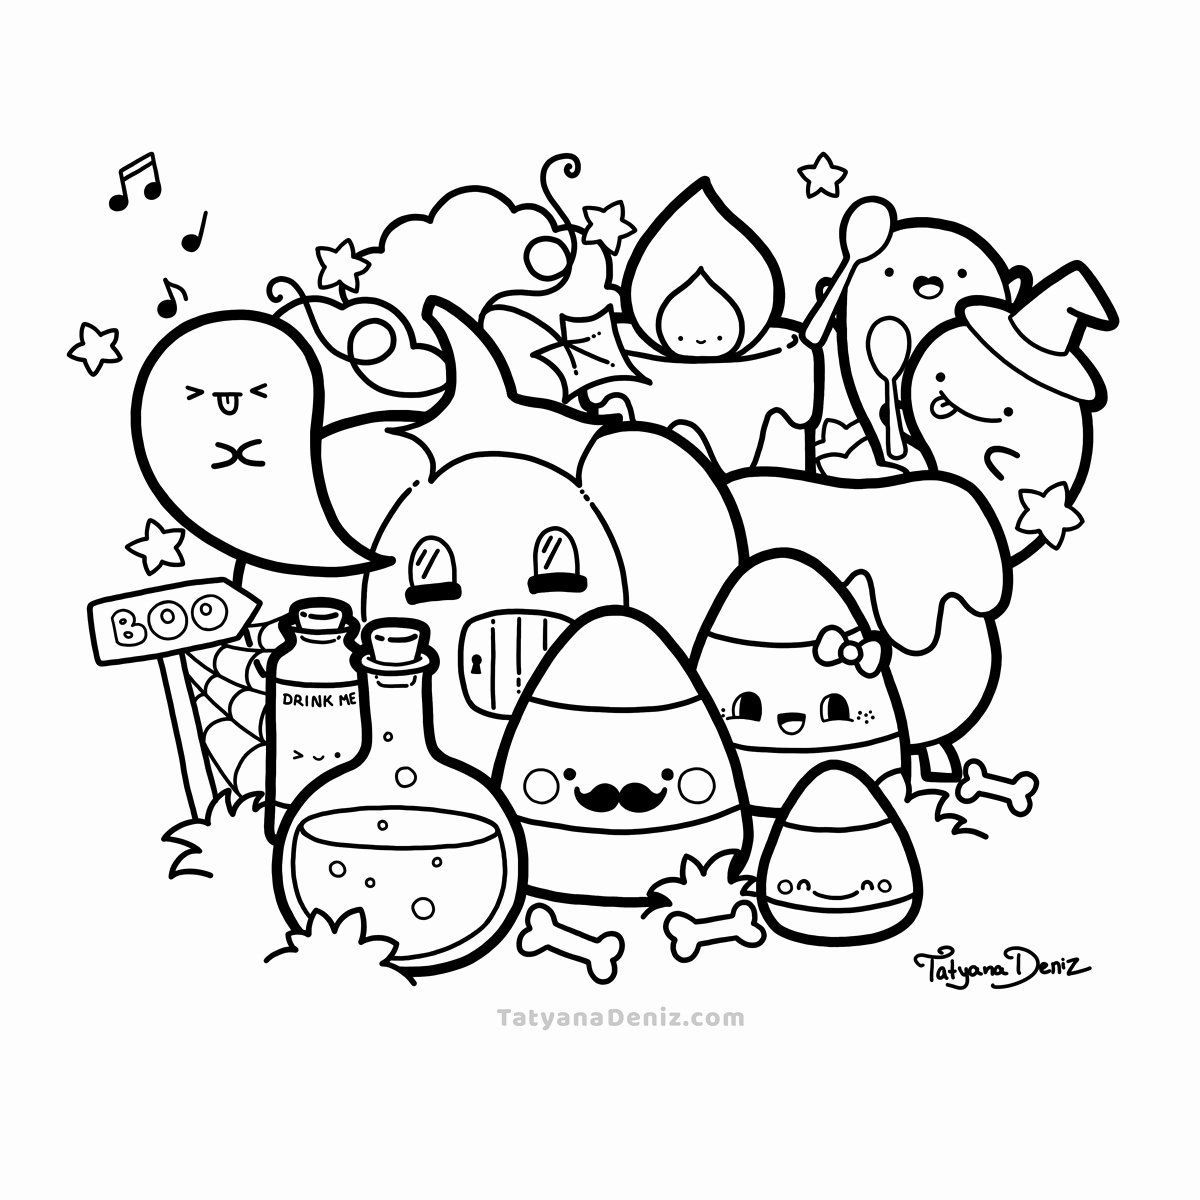 Halloween Kitty Coloring Pages Awesome Coloring Page Halloween Coloring Pages Pdf Page Kawaii In 2020 Chibi Coloring Pages Cute Coloring Pages Halloween Coloring Pages